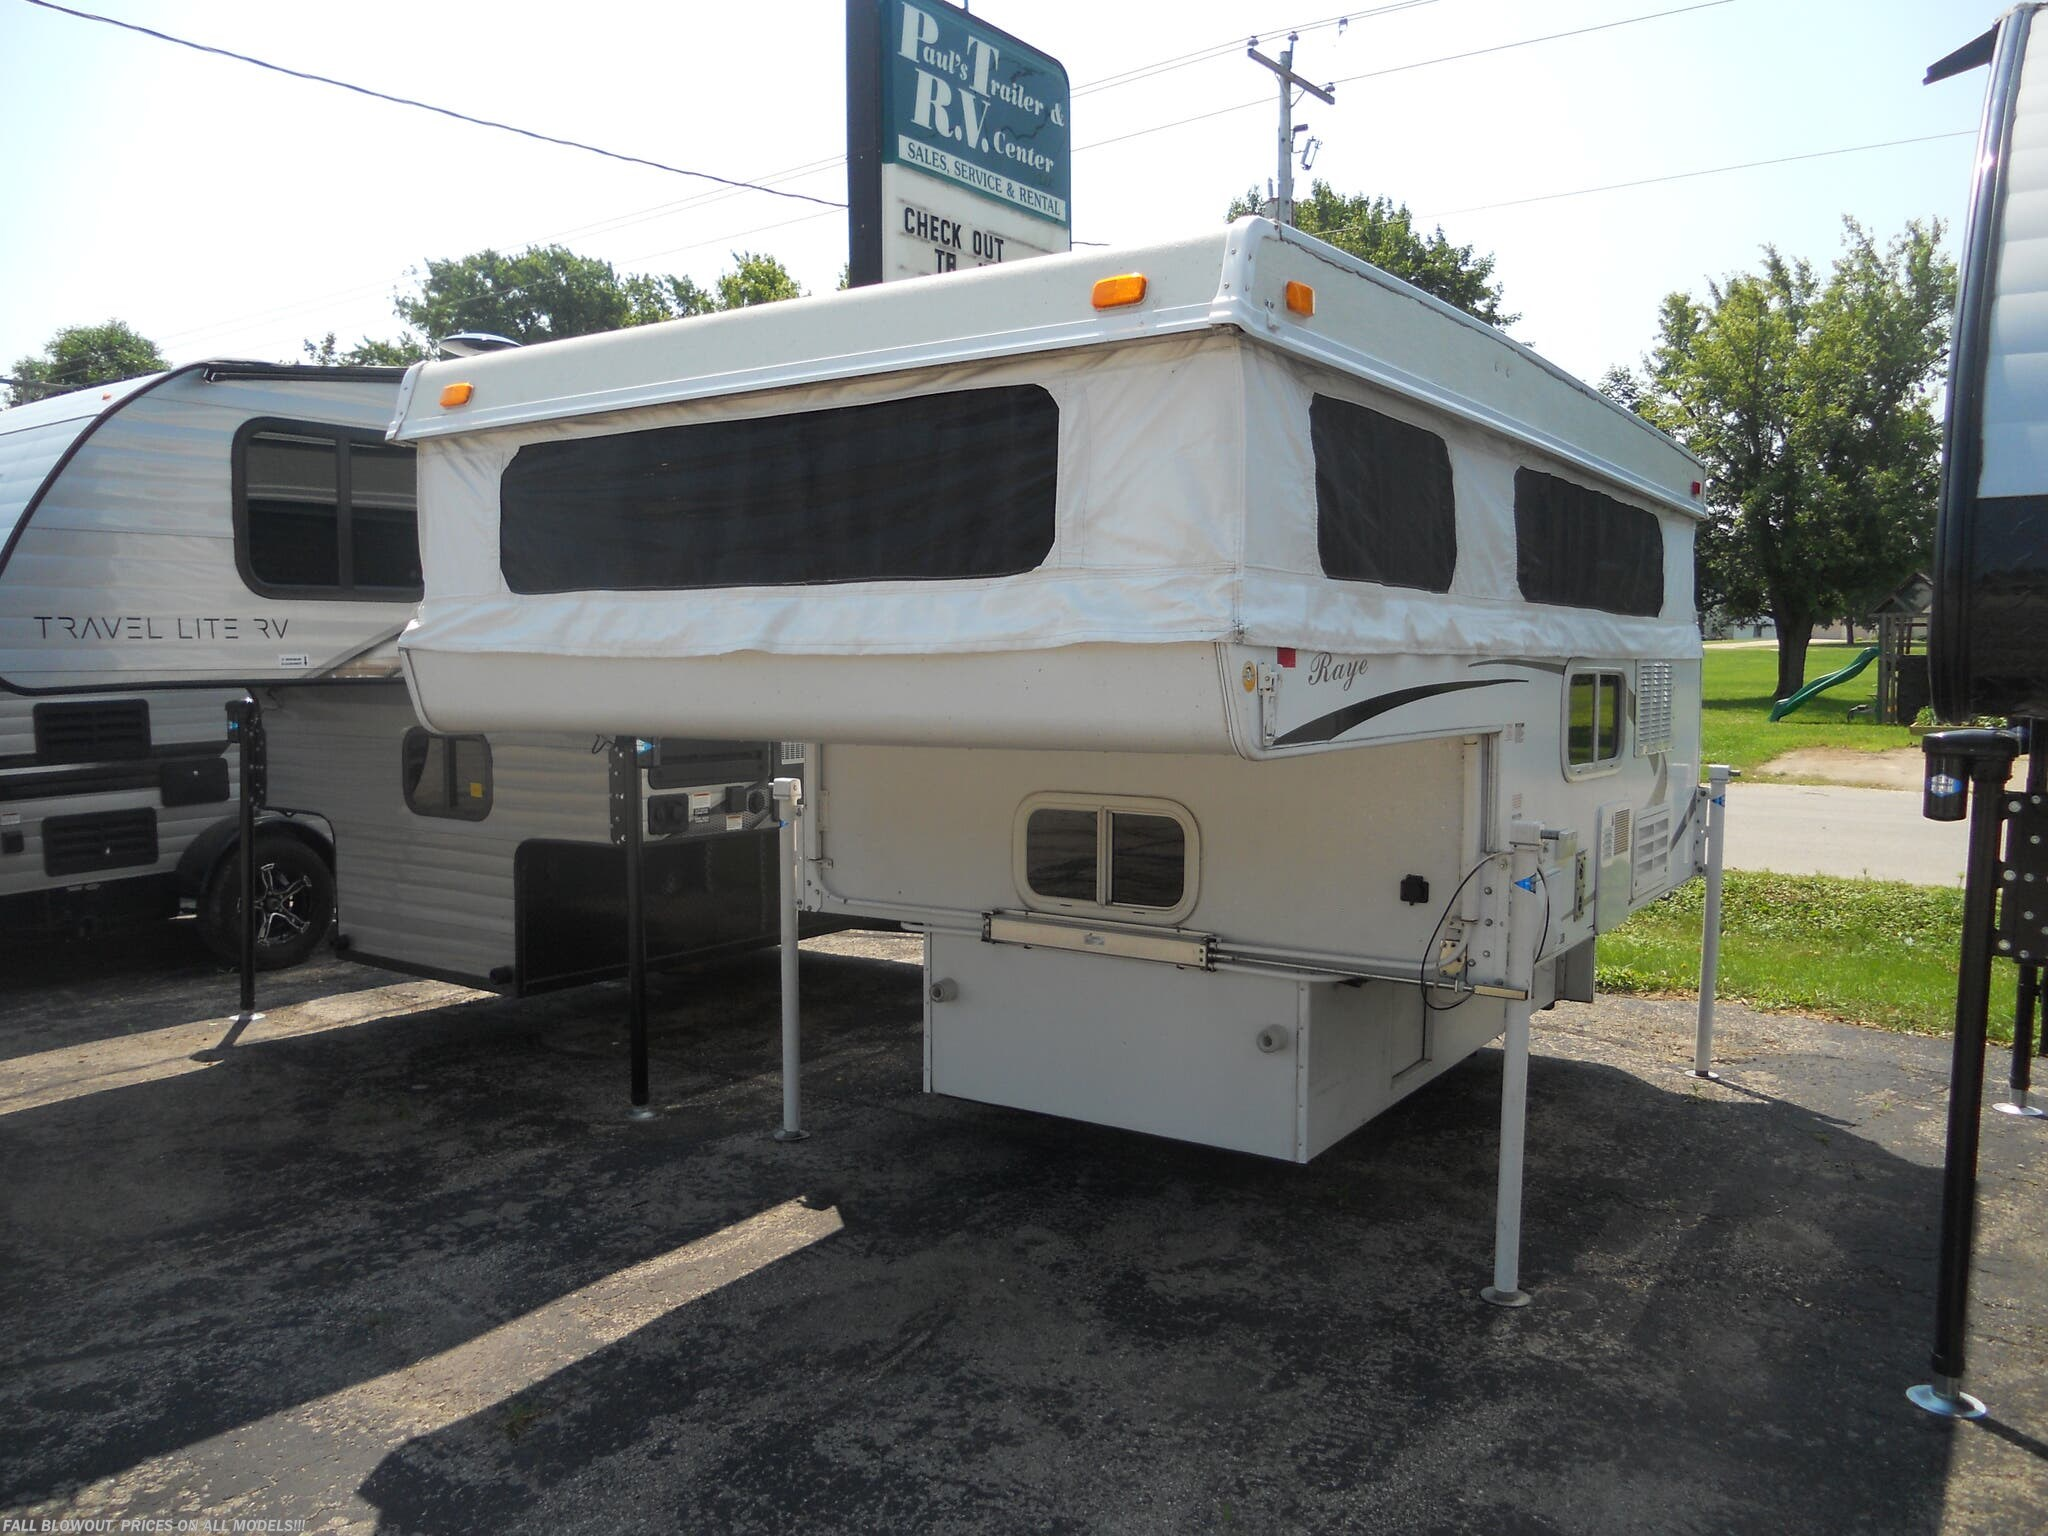 2010 Palomino Rv Bronco 1200 For Sale In Greenleaf Wi 54126 C10p8876